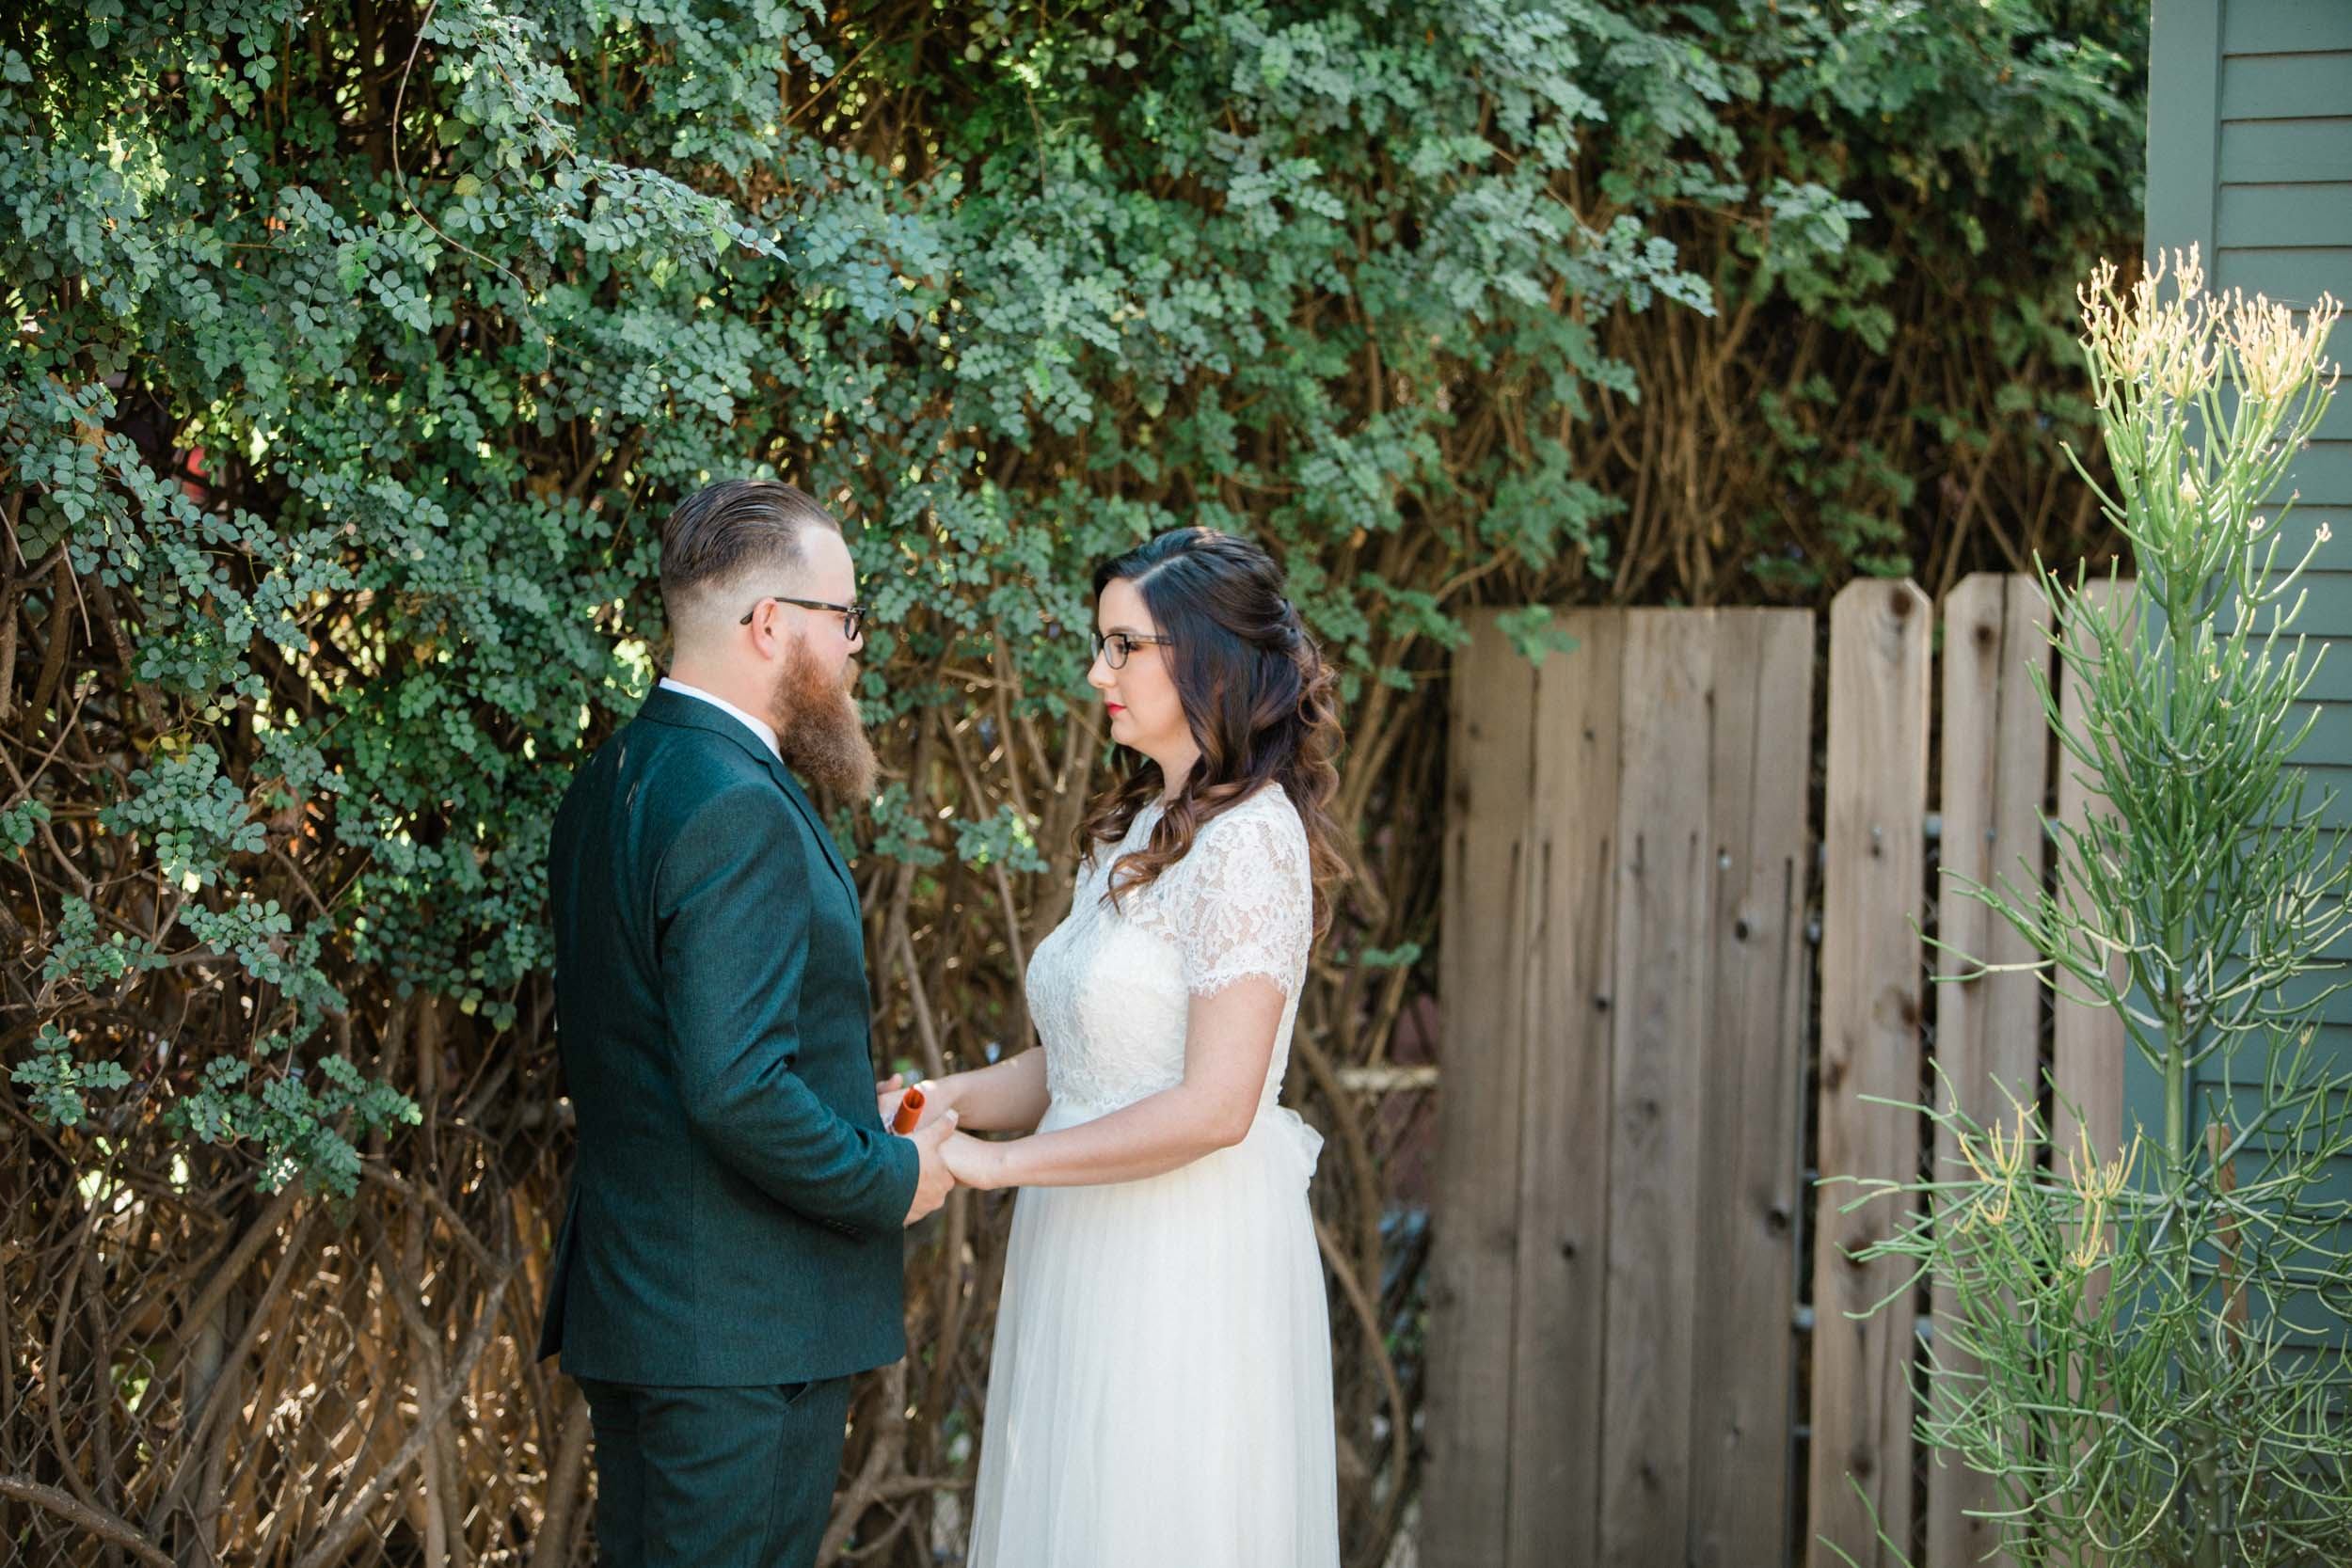 BKM-Photography-Highland-Park-Los-Angeles-Backyard-DIY-Wedding-0055.jpg